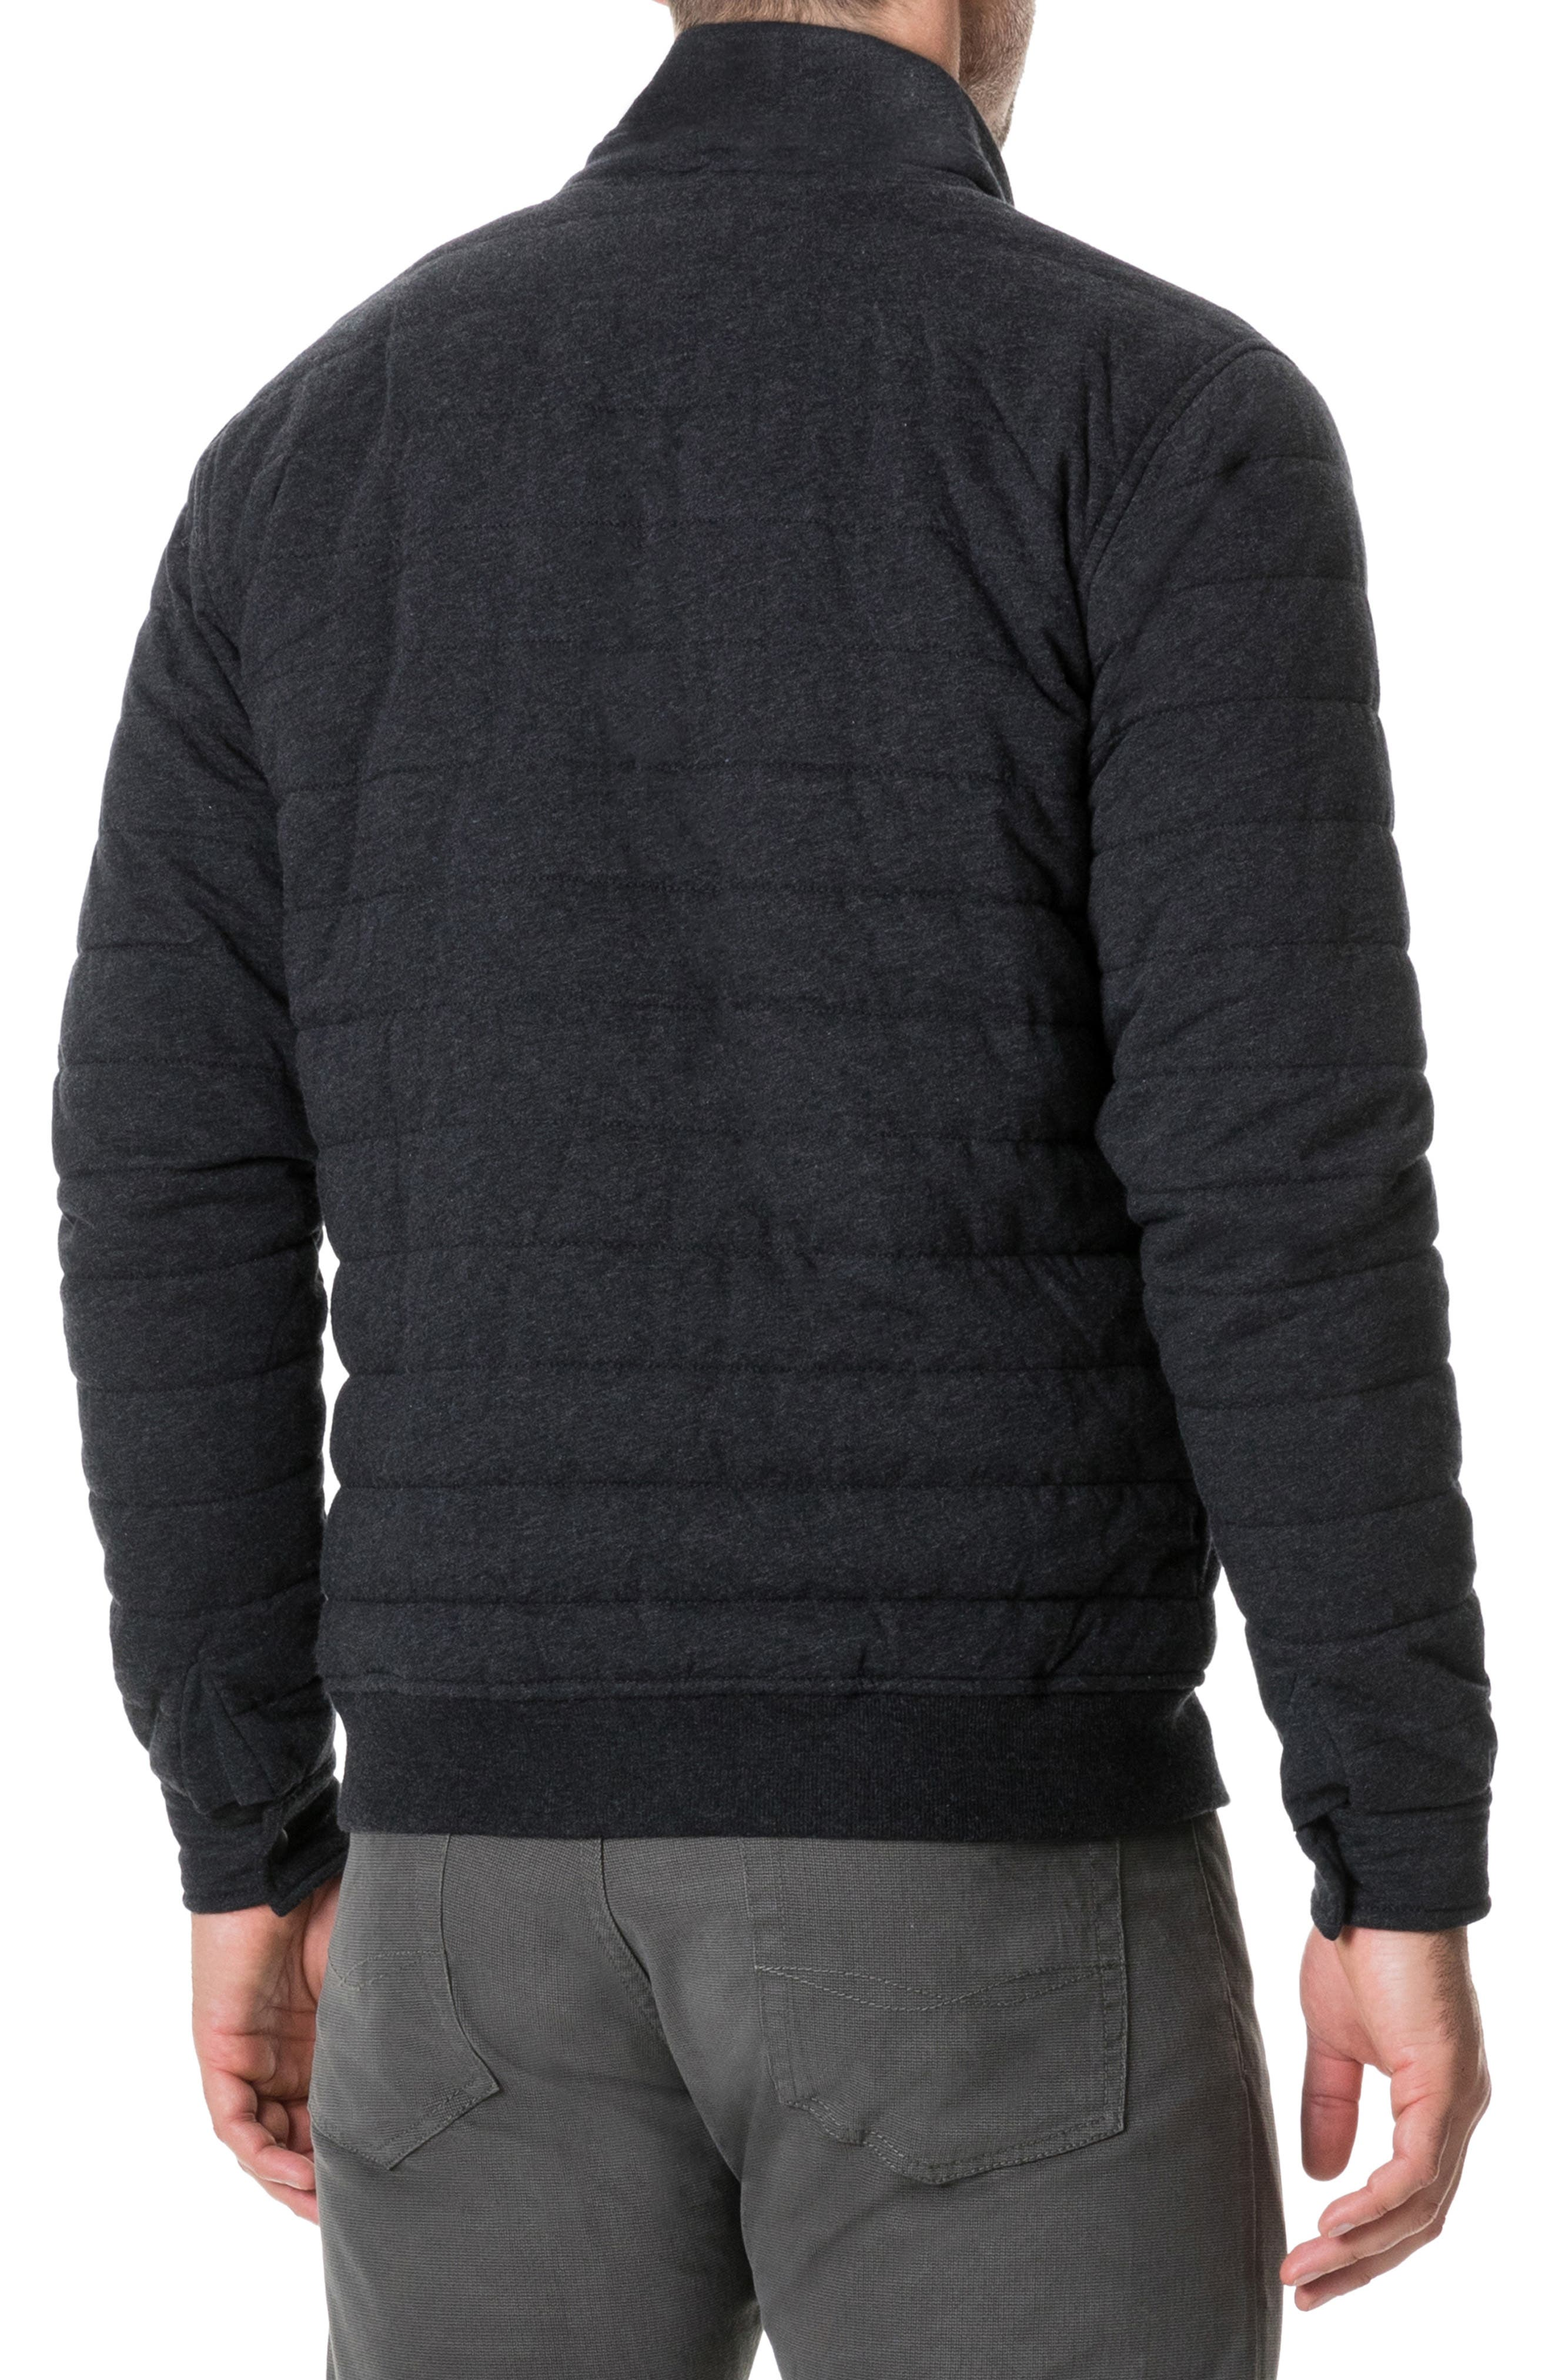 Birch Hill Regular Fit Jacket,                             Alternate thumbnail 2, color,                             CHARCOAL